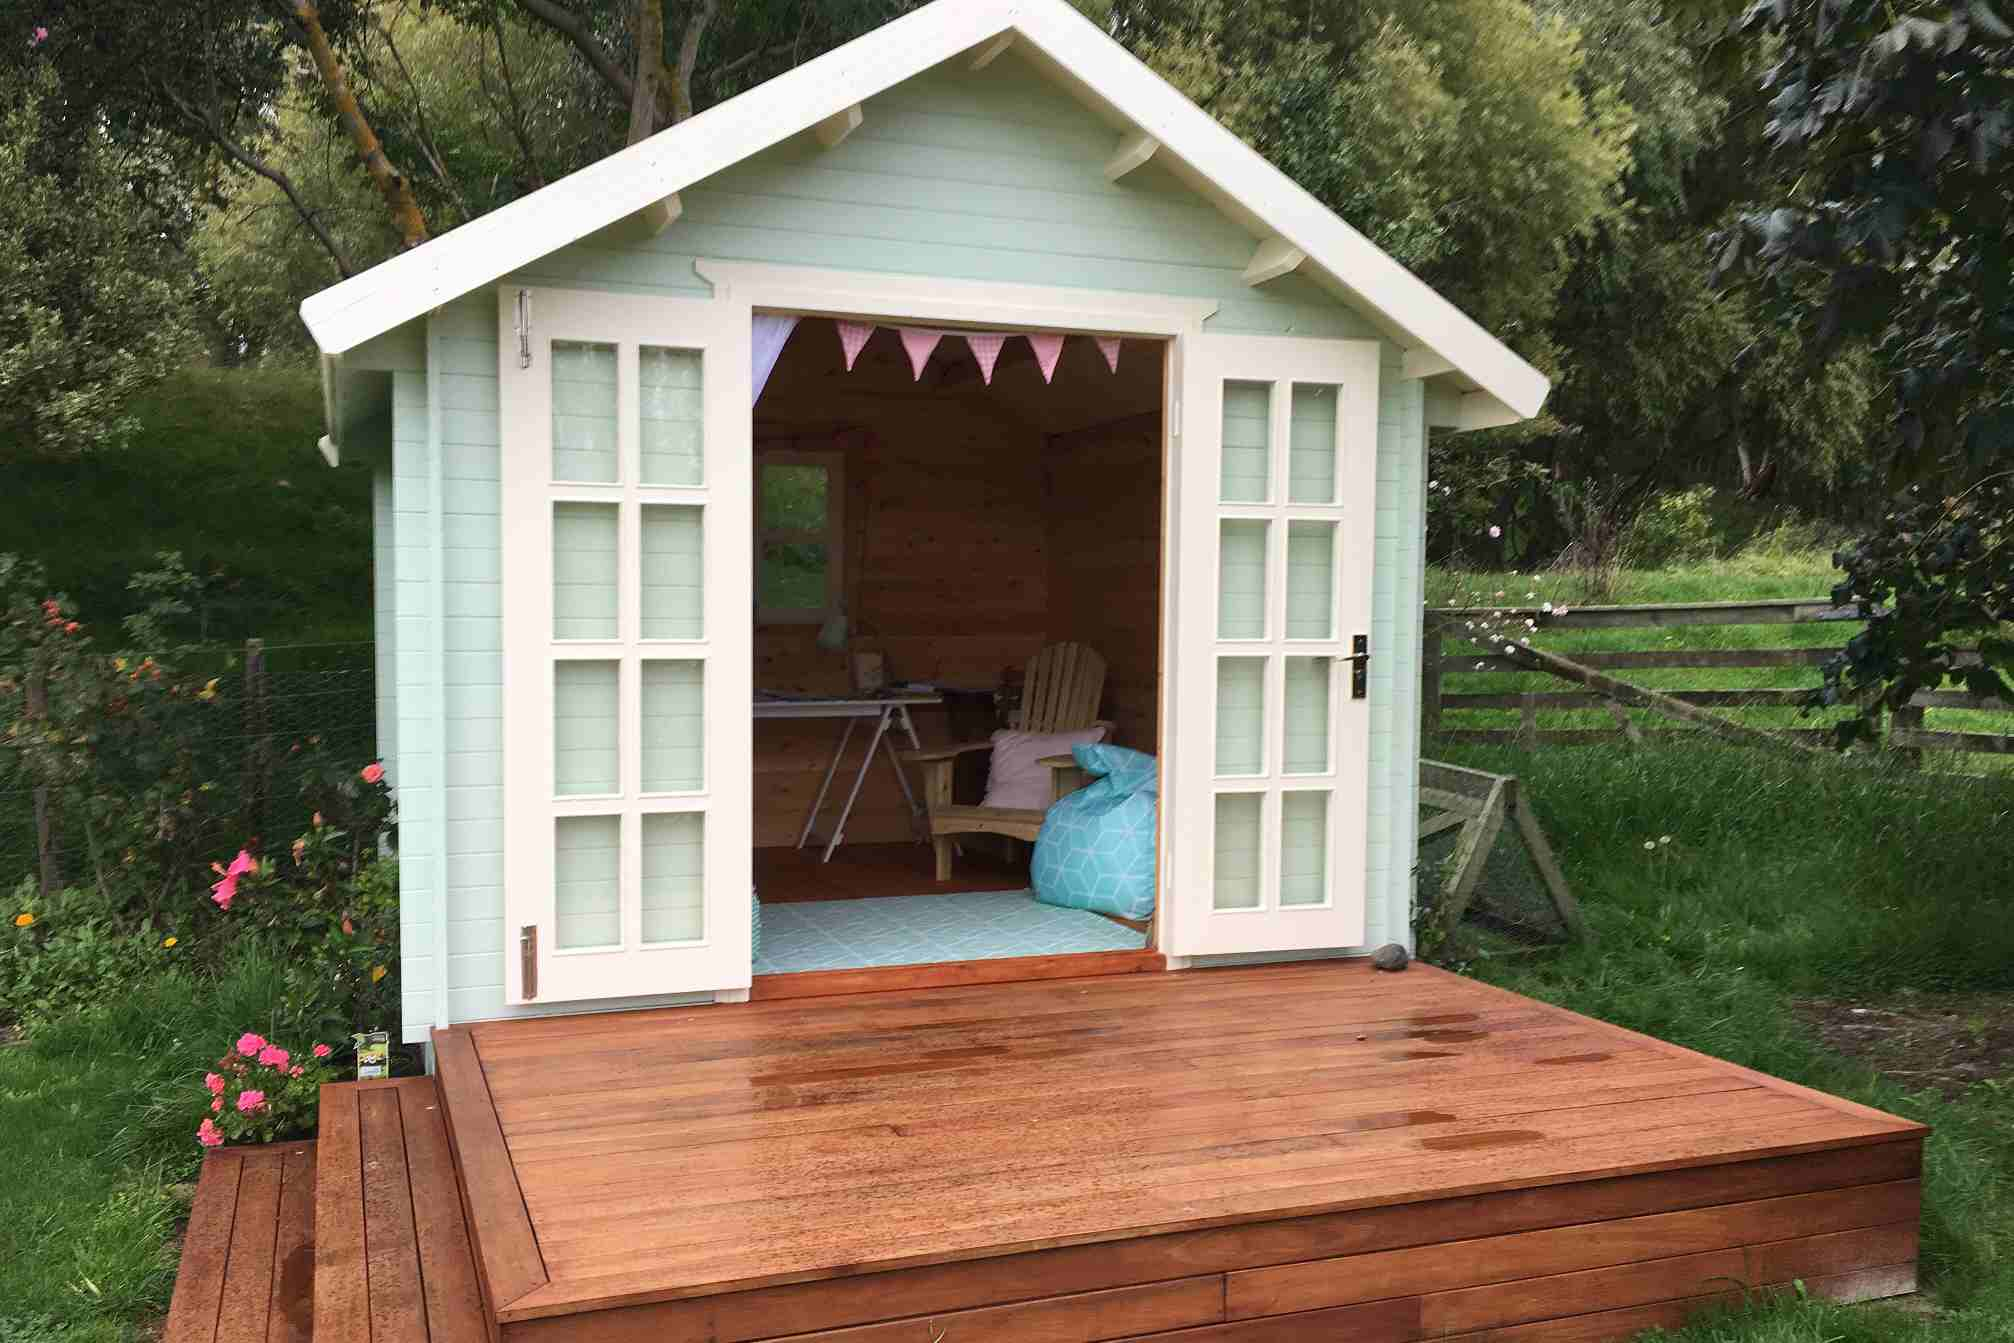 own your shed how a tool to sheds wooden build small building wood consider in things